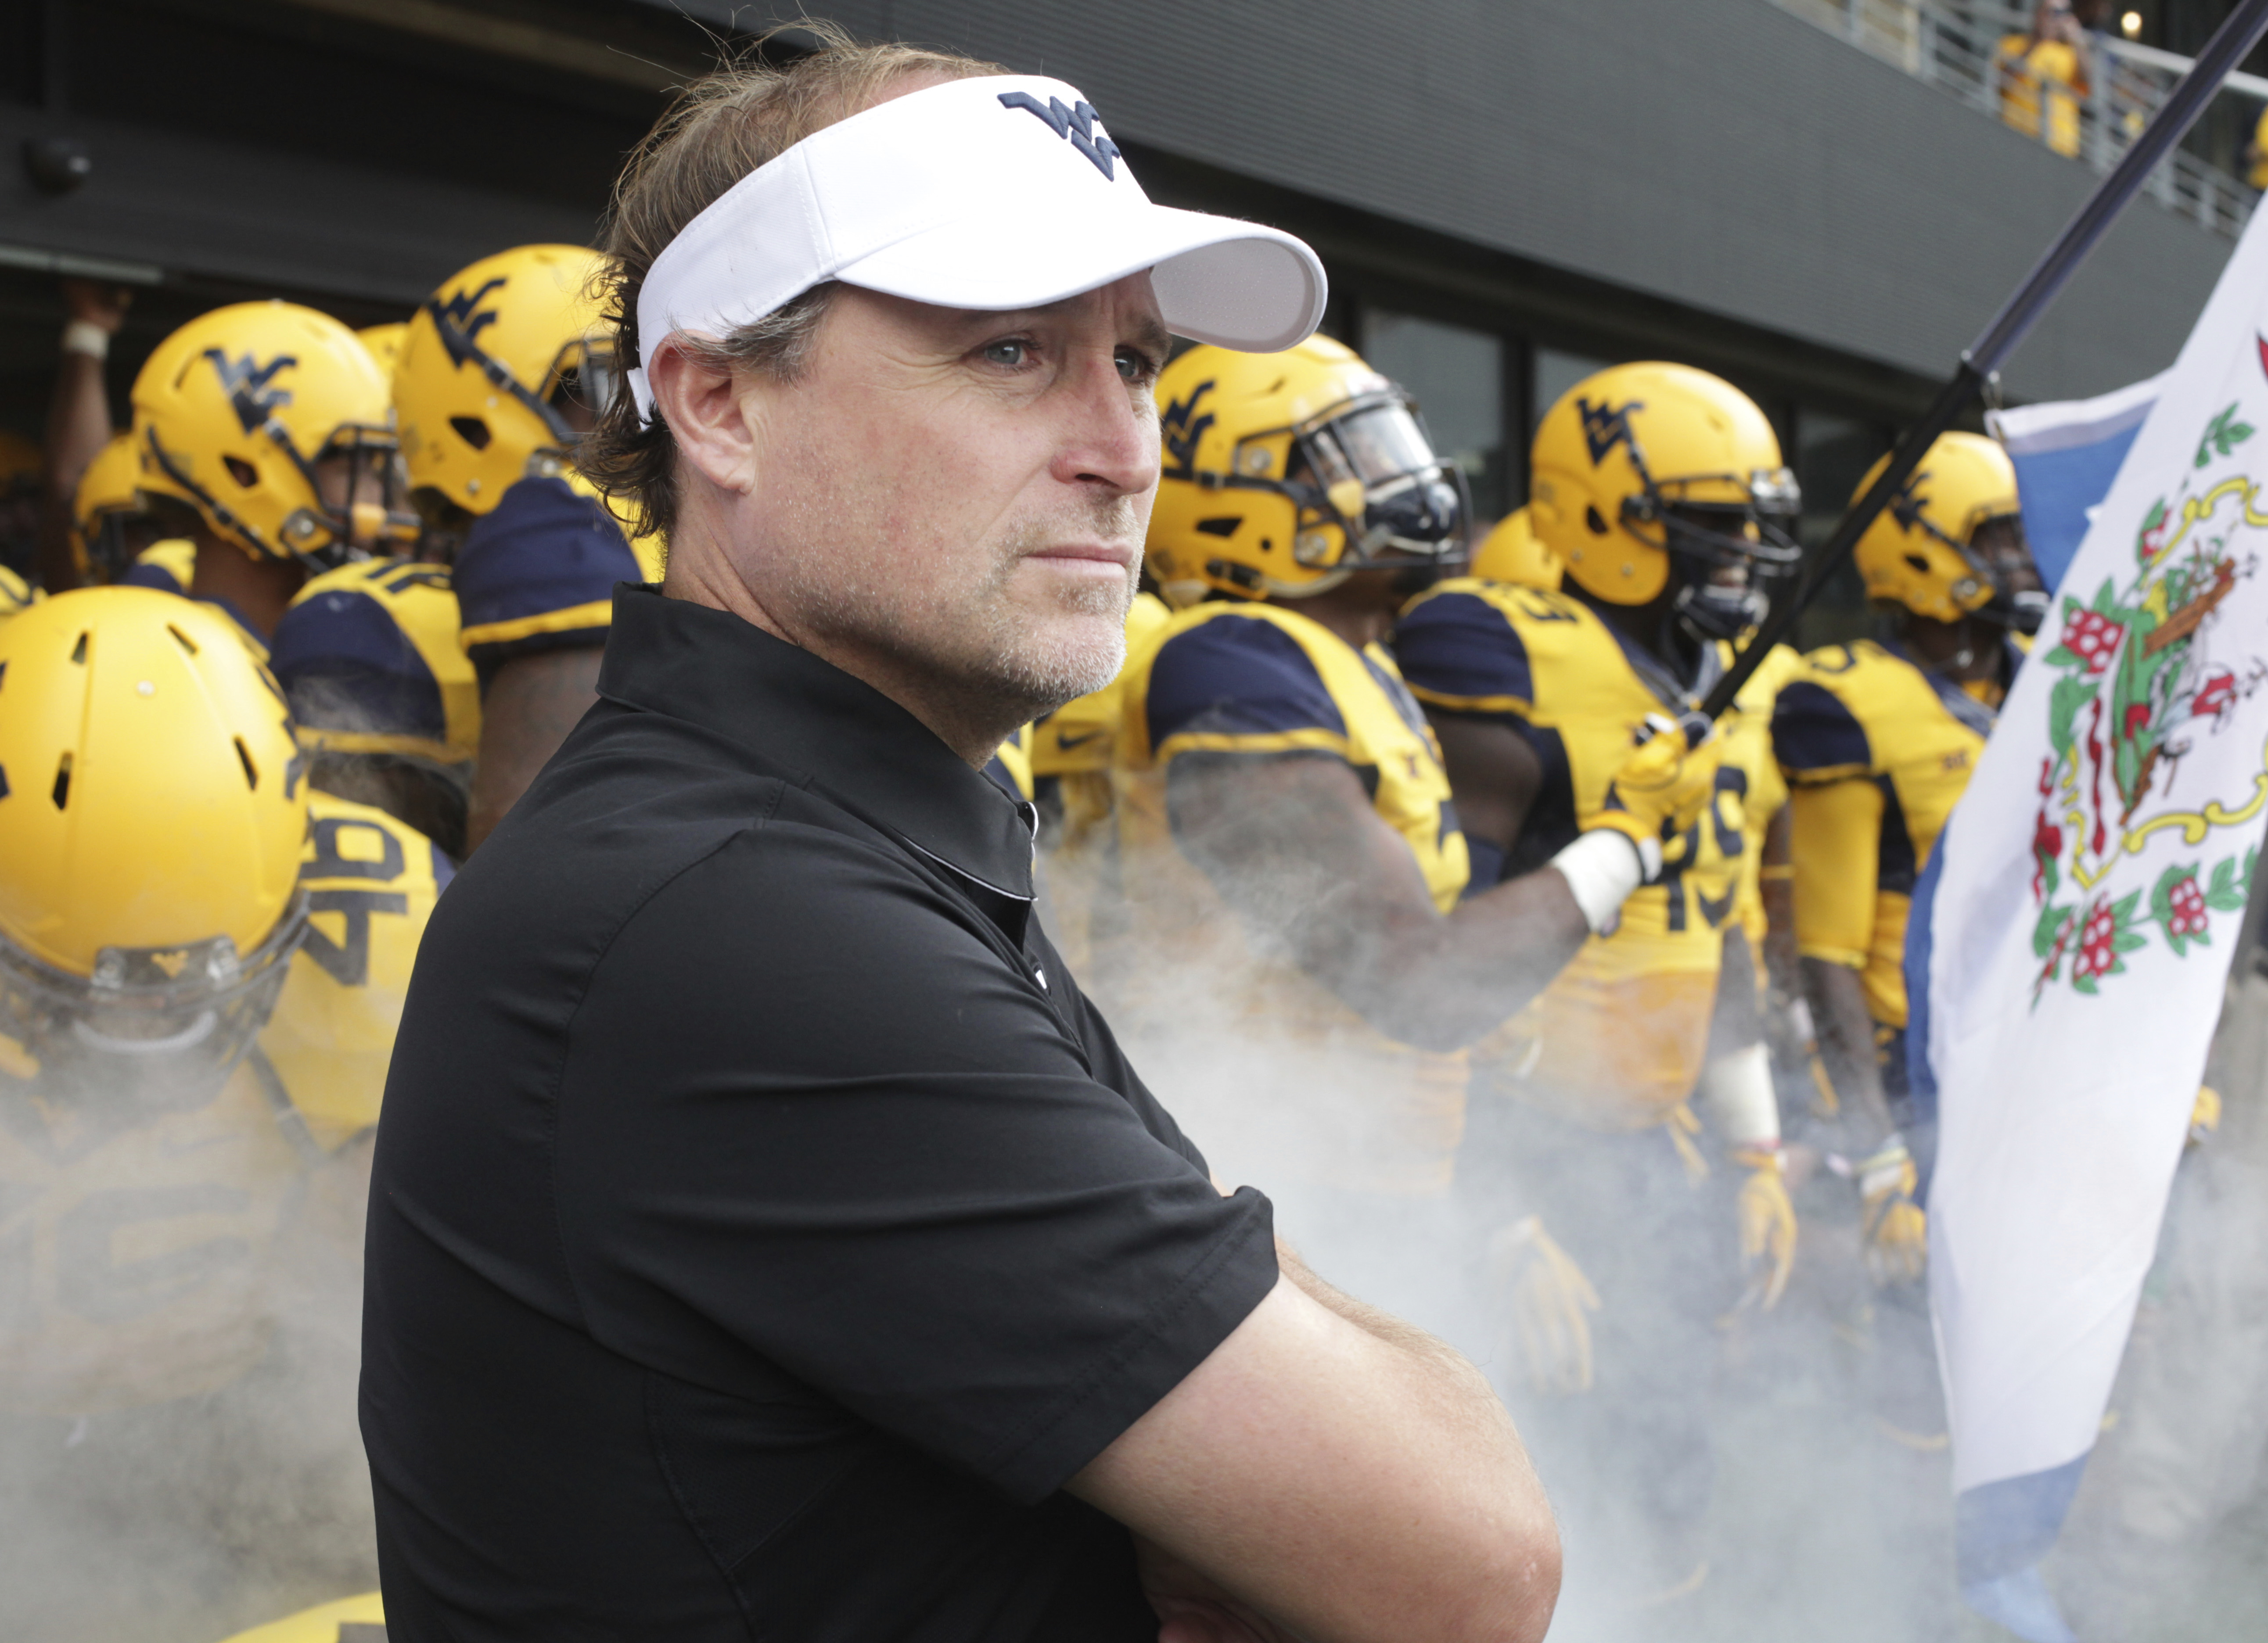 FILE - In this Oct. 1, 2016, file photo, West Virginia head coach Dana Holgorsen waits with his team before an NCAA college football game in Morgantown, W.Va. Holgorsen took plenty of heat for West Virginia's struggles in its first four seasons after join